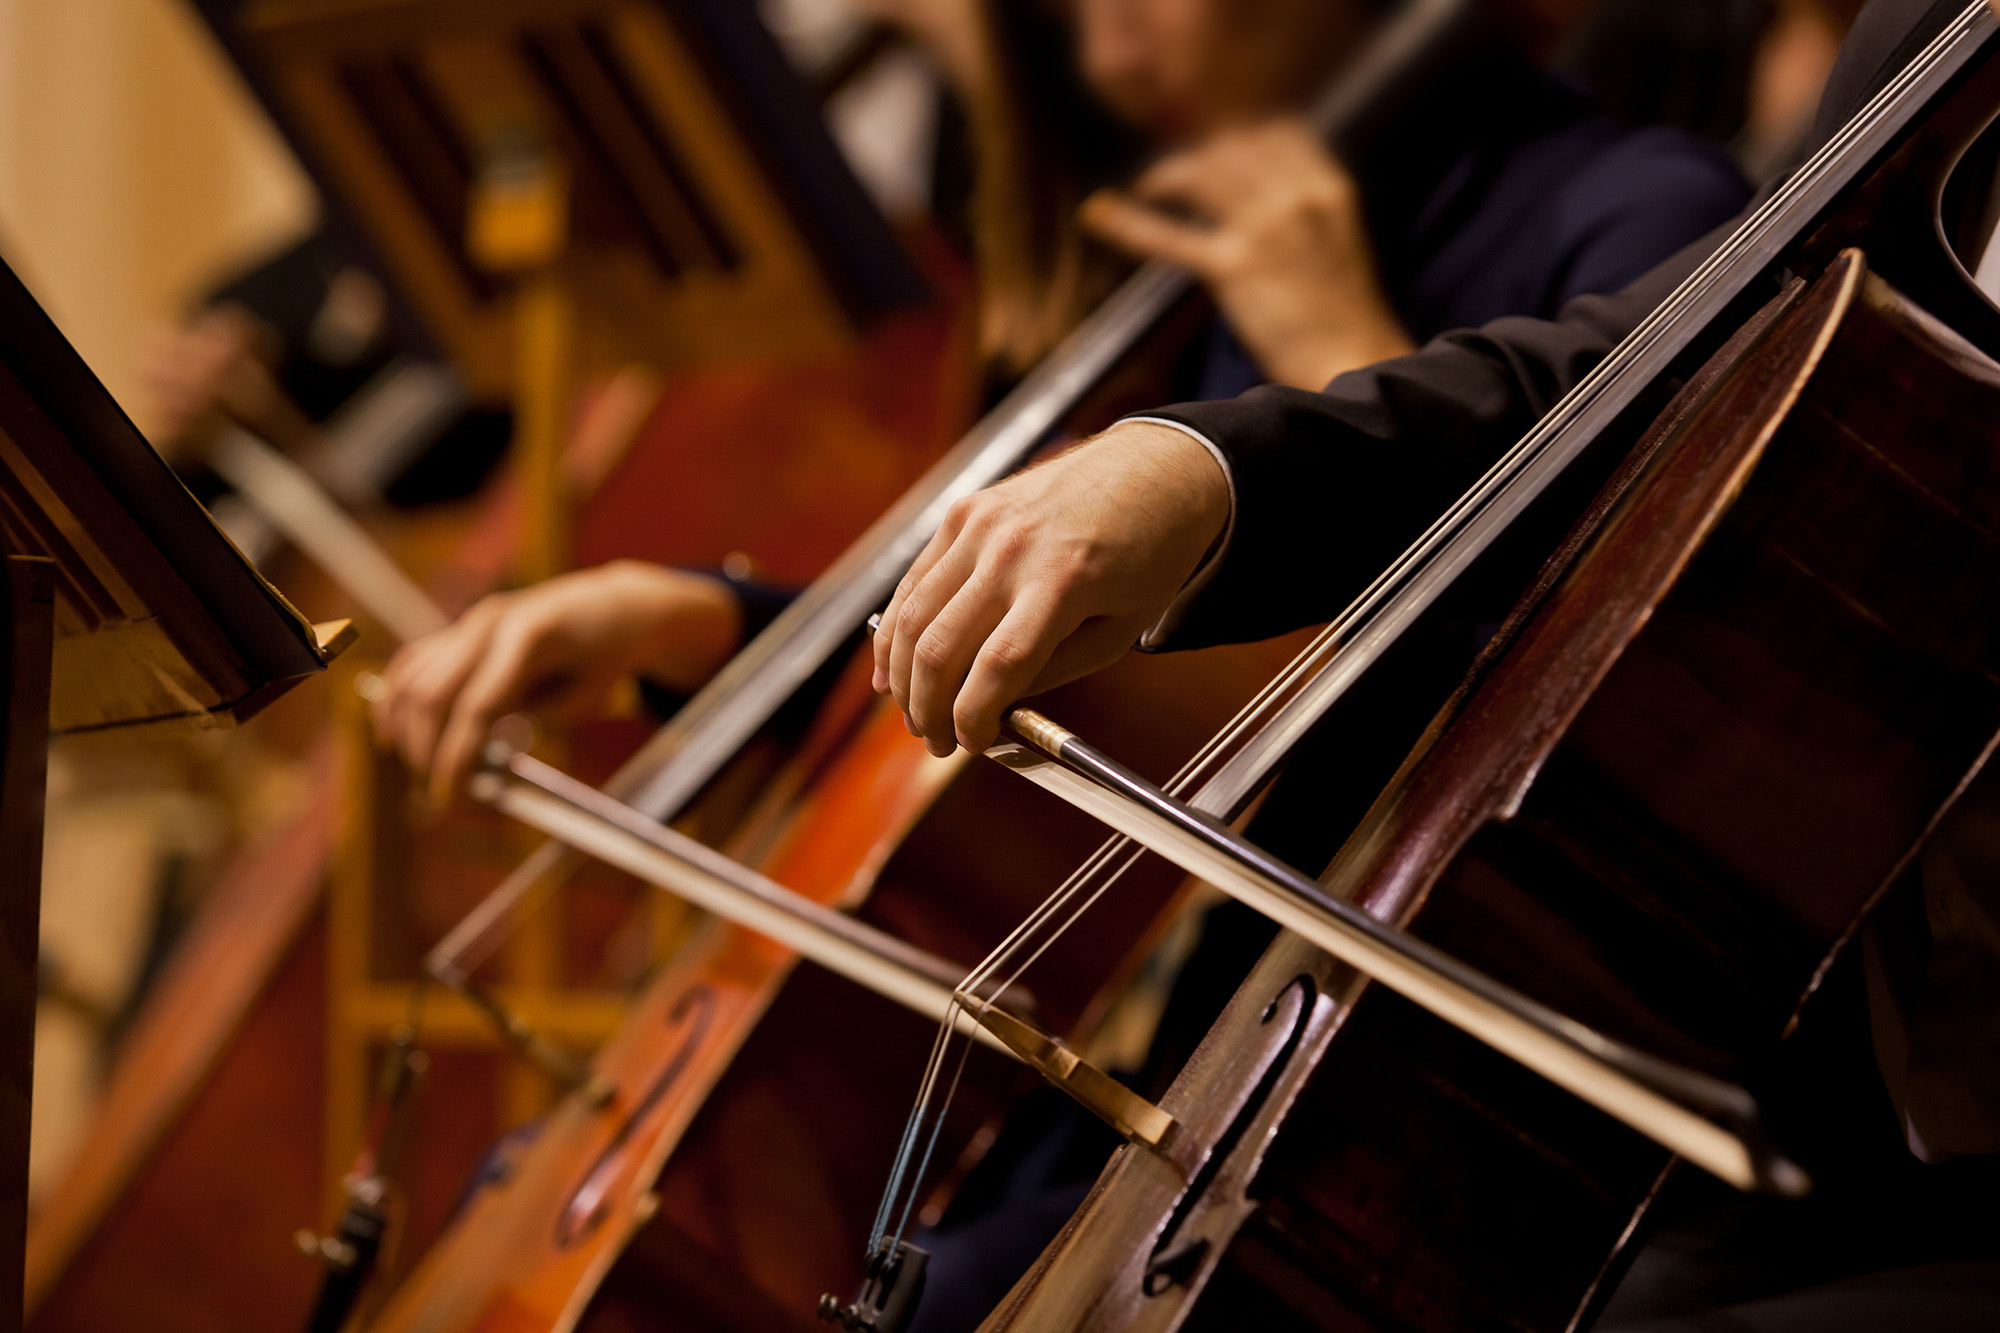 Hands of the man playing the cello